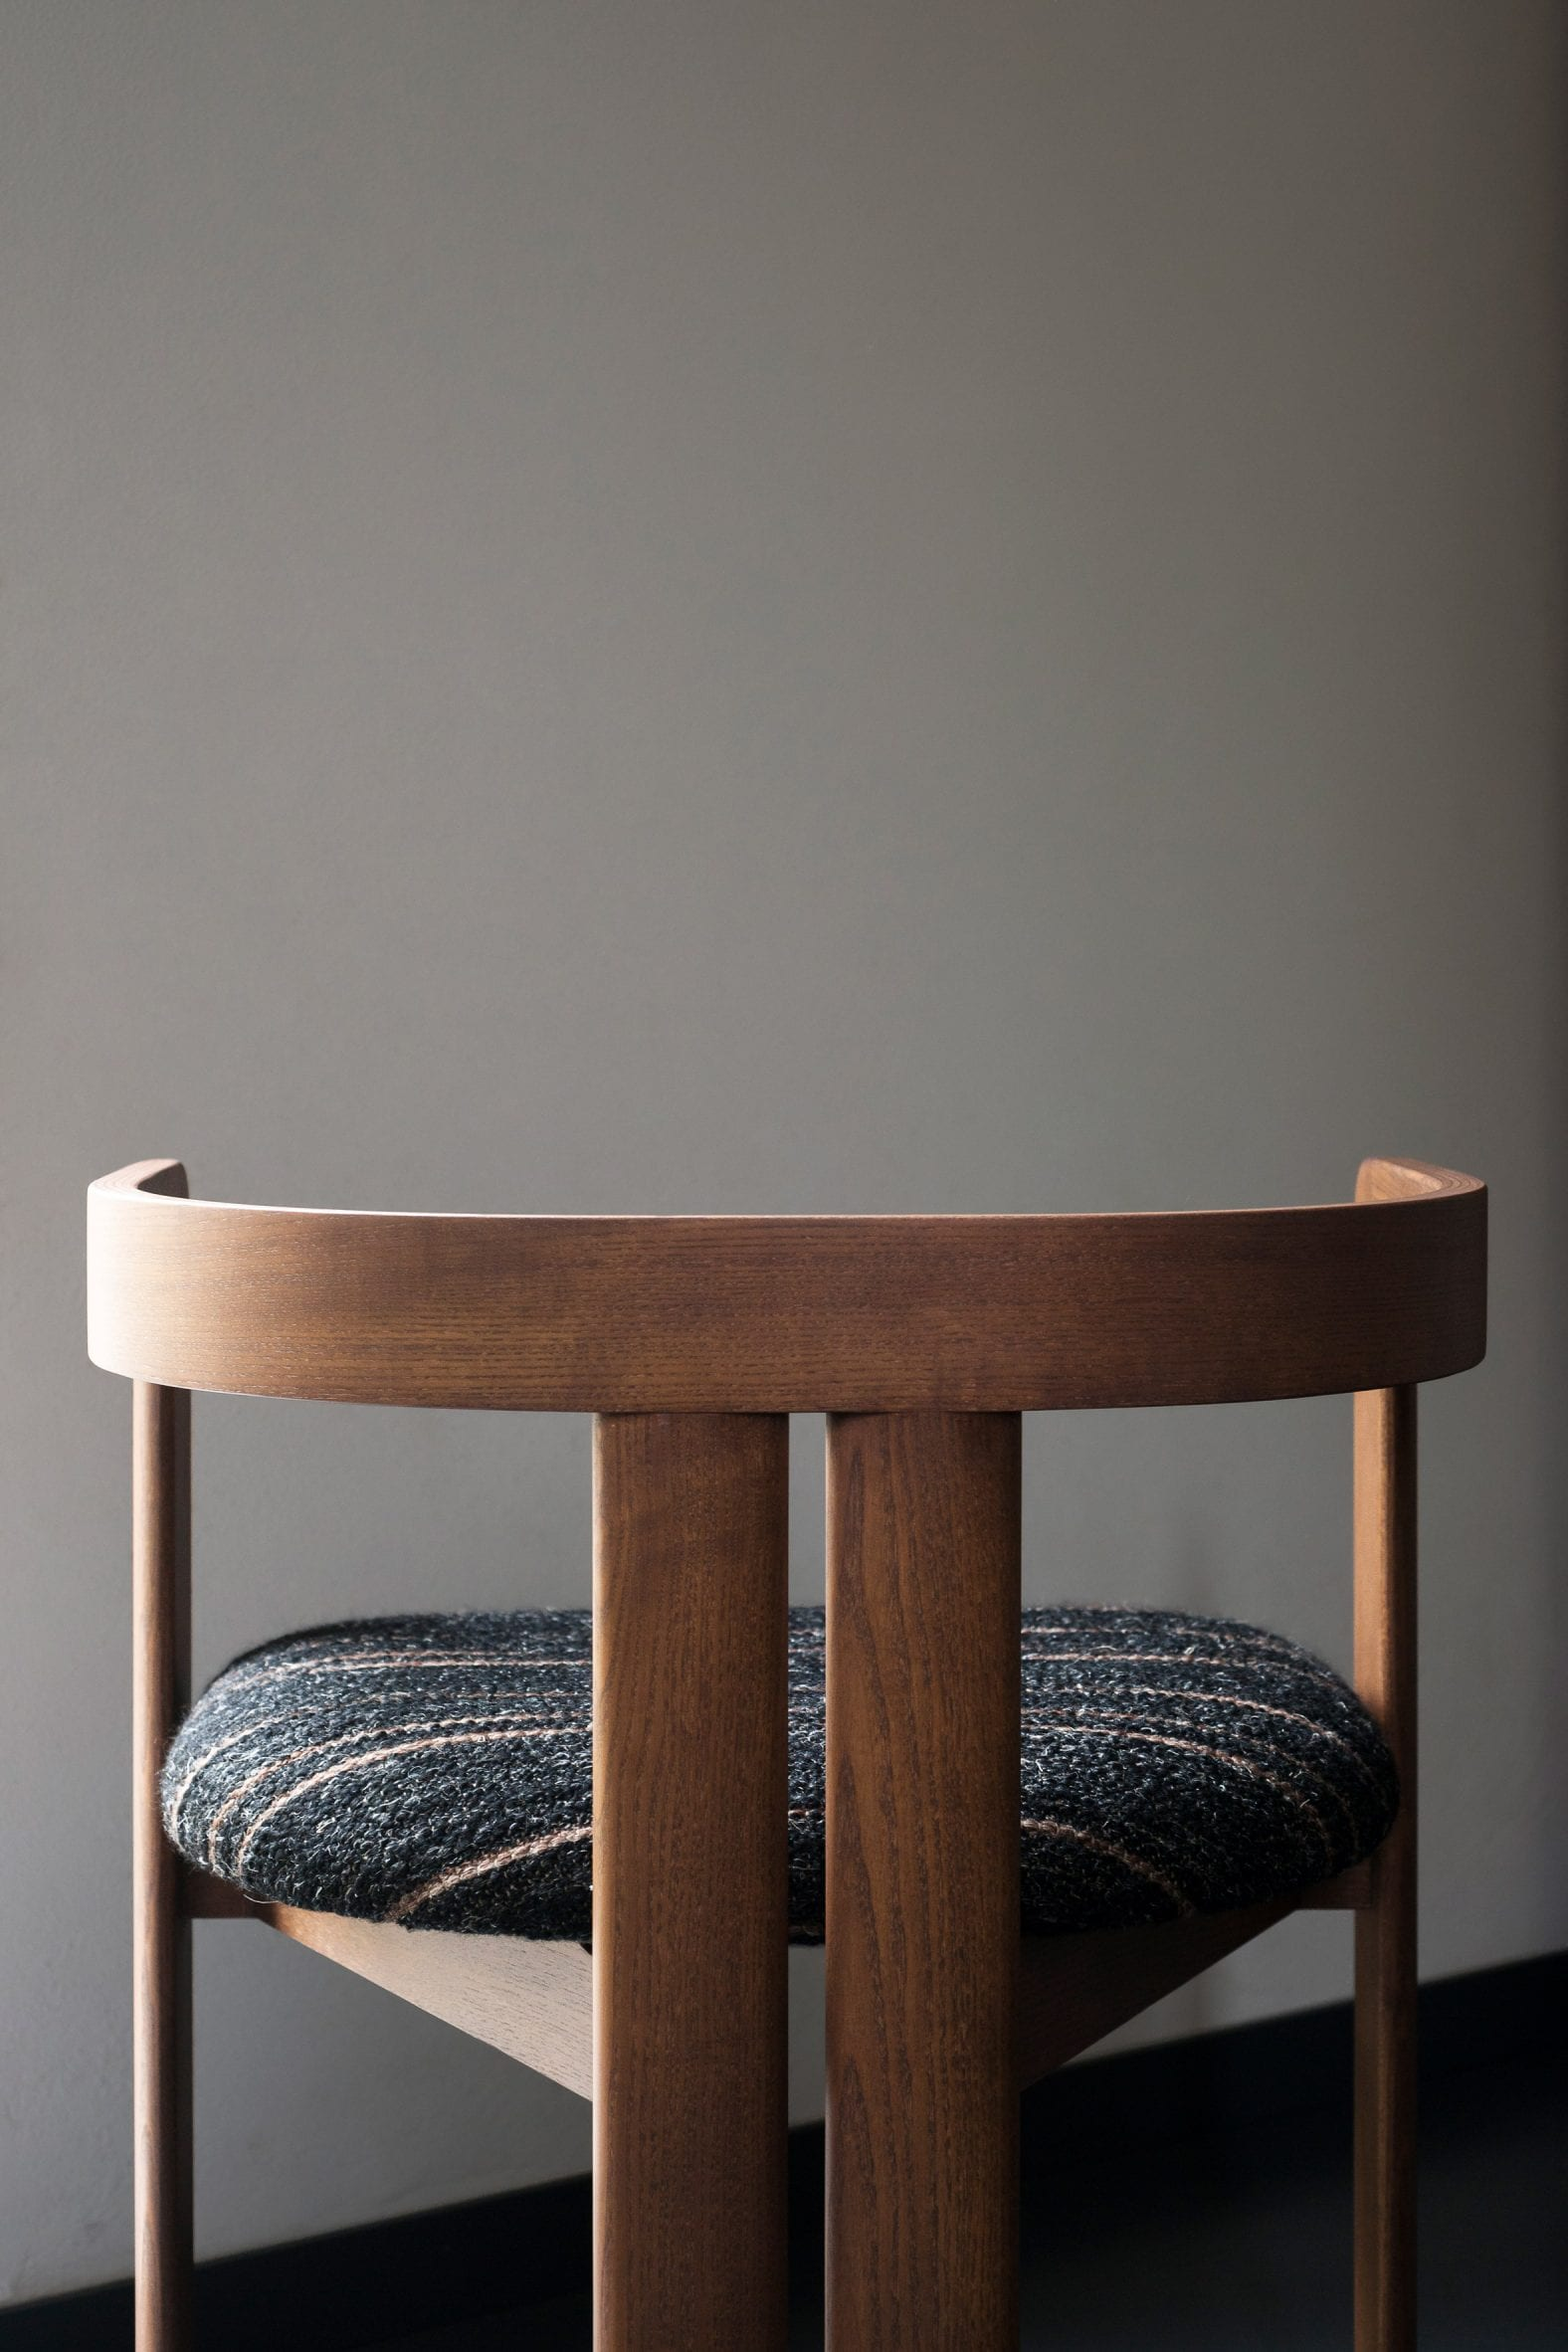 Close up of Pigreco chair's back sister legs and triangular base